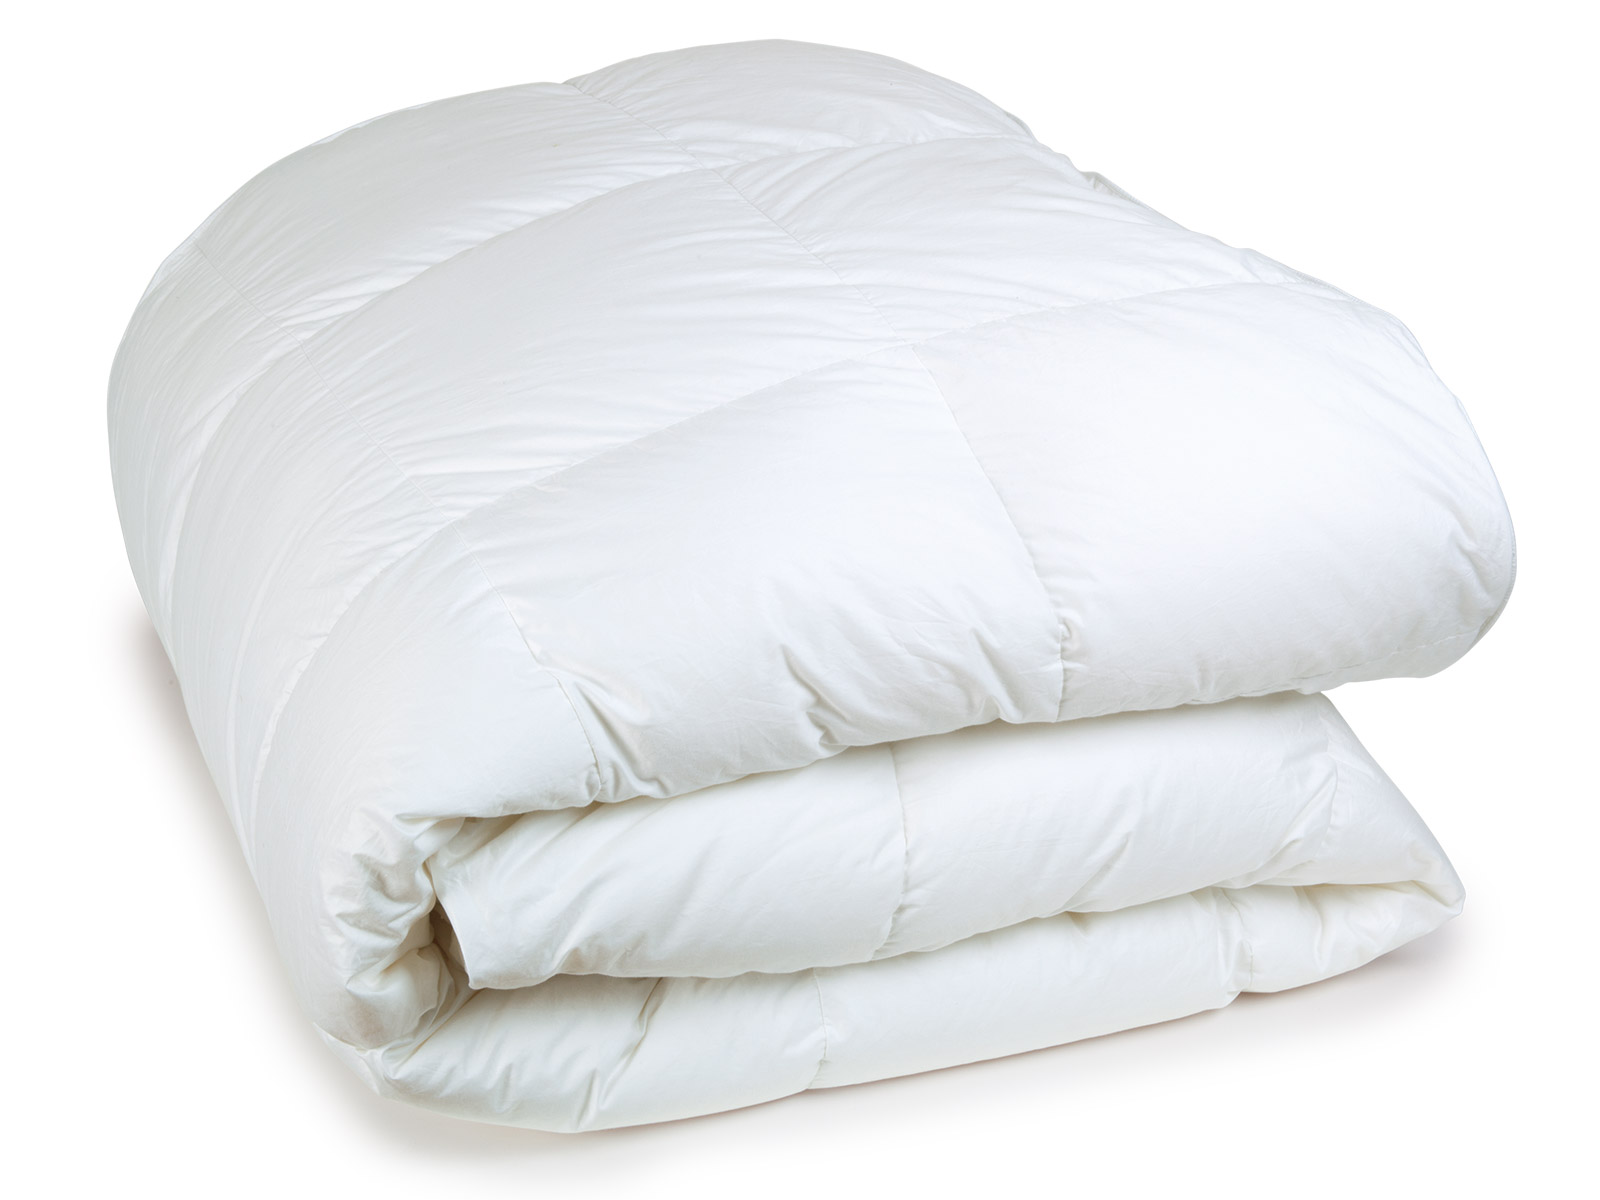 Heidi 950 Fill-Power Comforter and matching Pillows. Pre-order now!